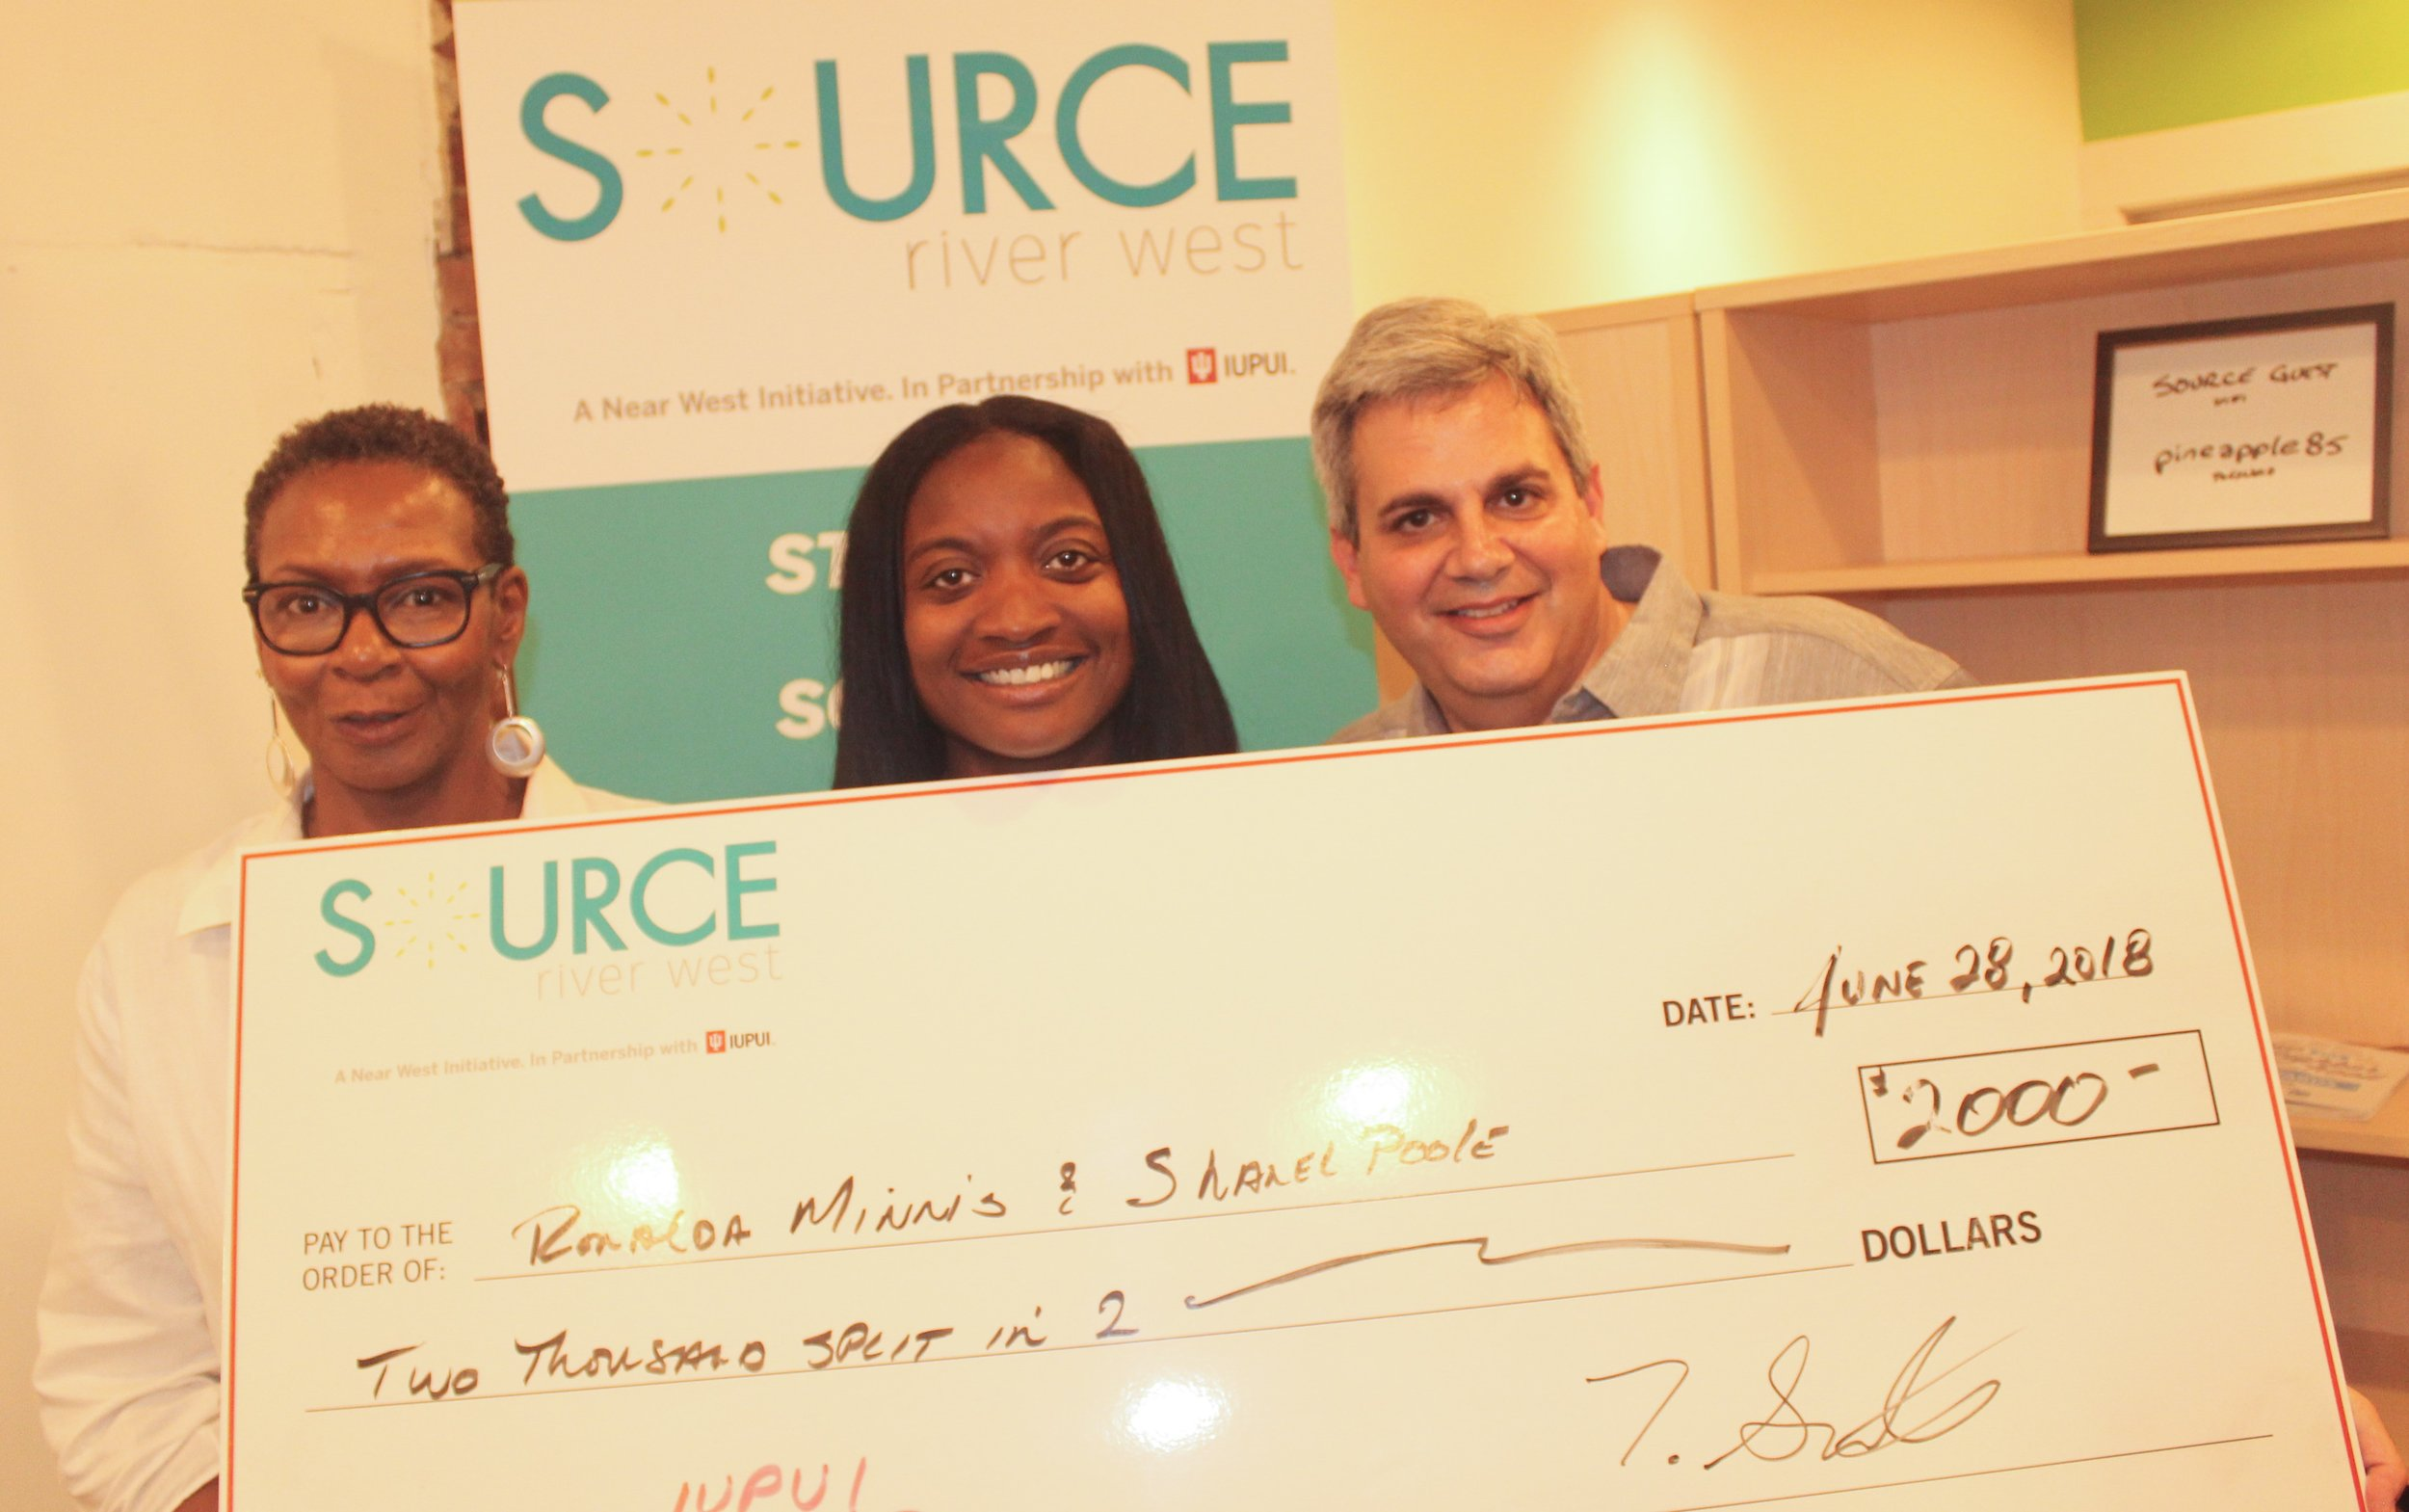 (From left to right) Ronalda Minnis and Shanel Poole with Mark Roger, Center Director at SOURCE RW